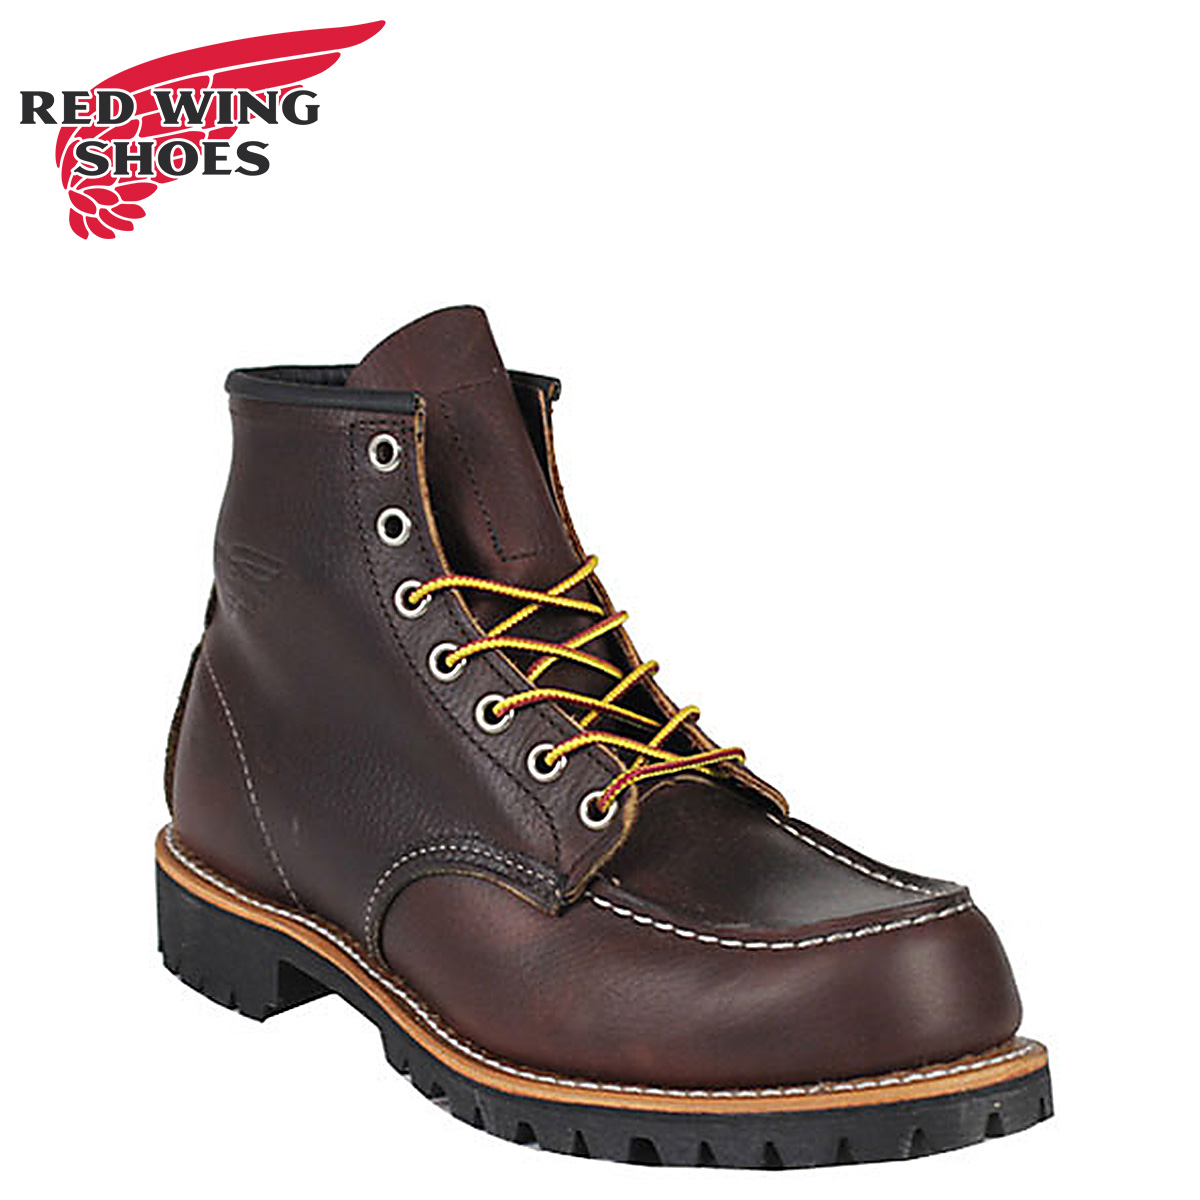 Redwing RED WING 6 inch MOC to boots 8146 6inch Moc Toe Boots D wise leather mens Made in USA Red Wing